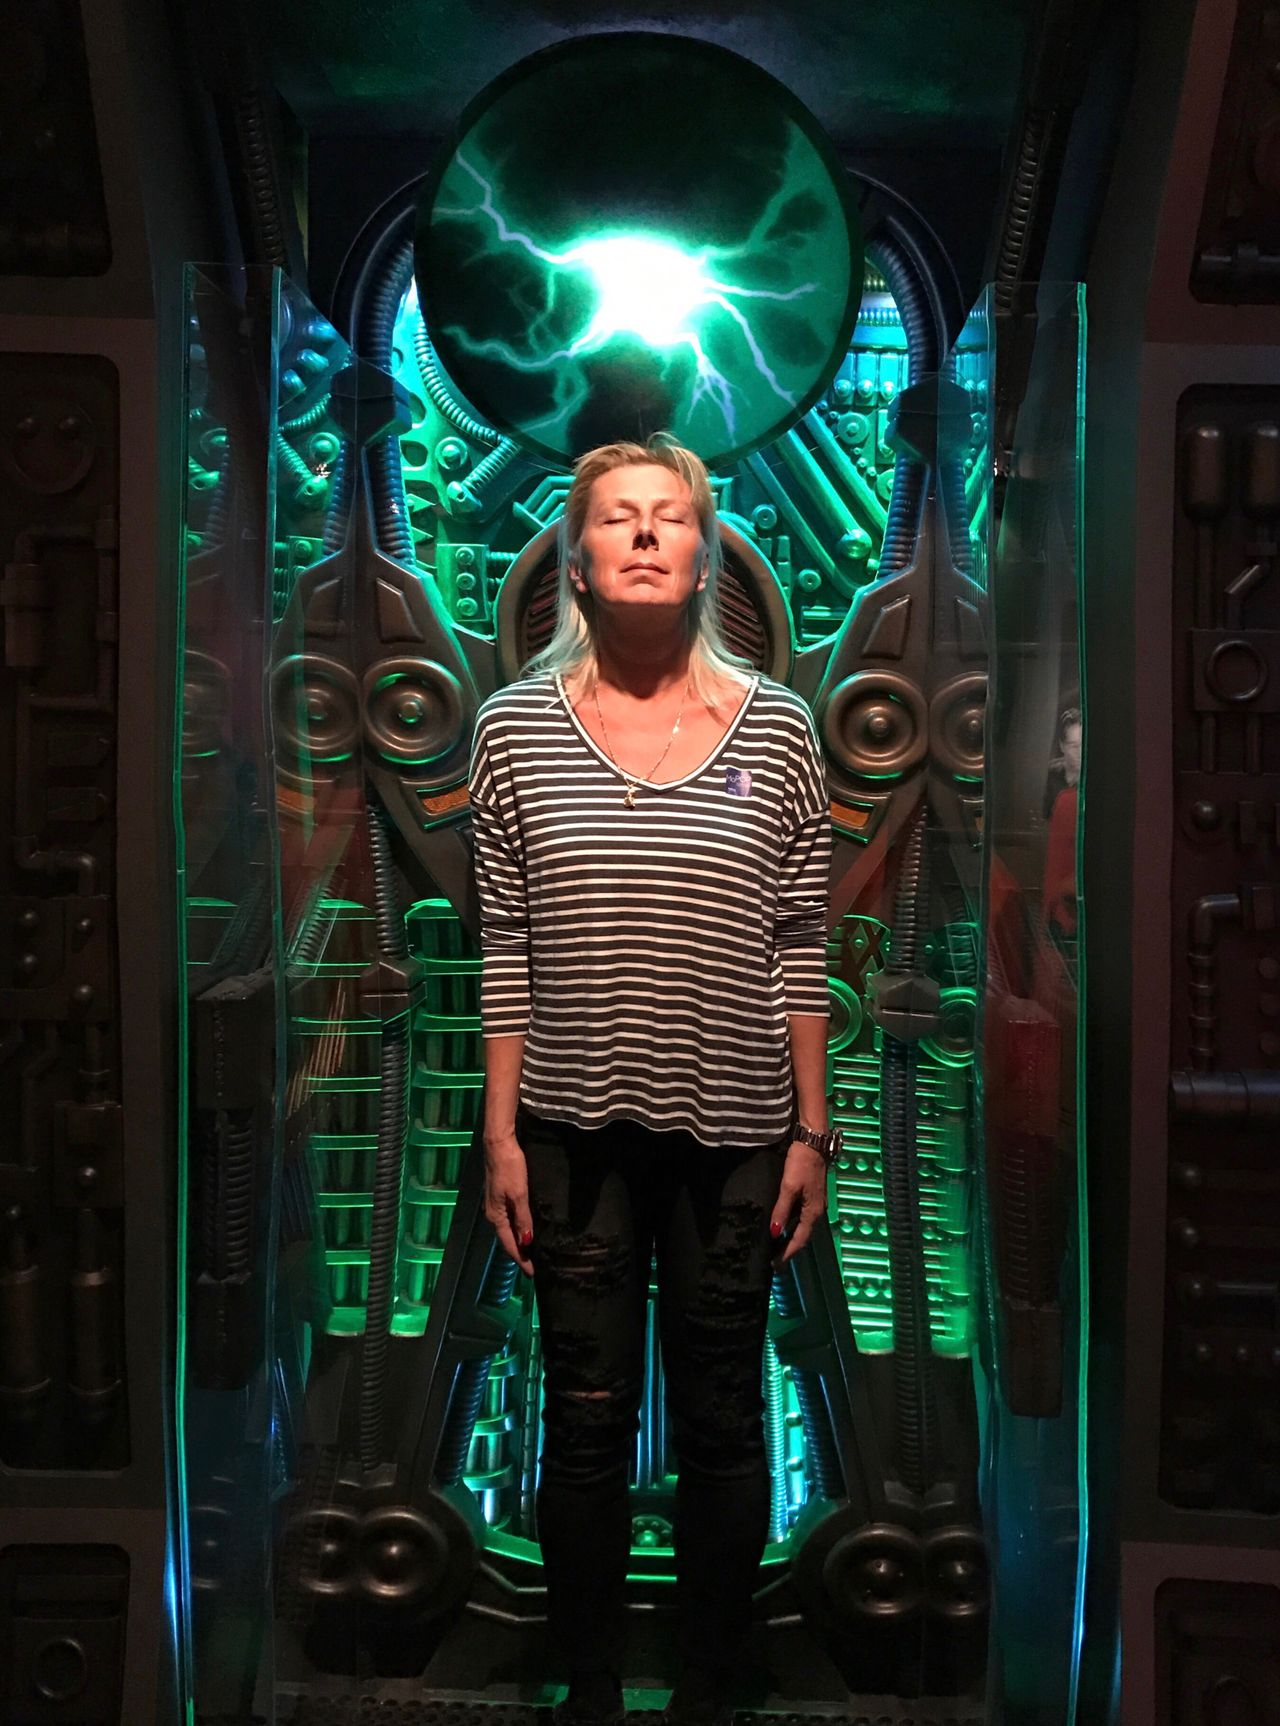 Regenerating in my Borg Alkoven One Person Front View Green Color Real People Young Adult Lifestyles People Only Men Adults Only One Man Only Adult Men Indoors  Human Body Part Star Trek Voyager Borg Science Fiction Chance Encounters